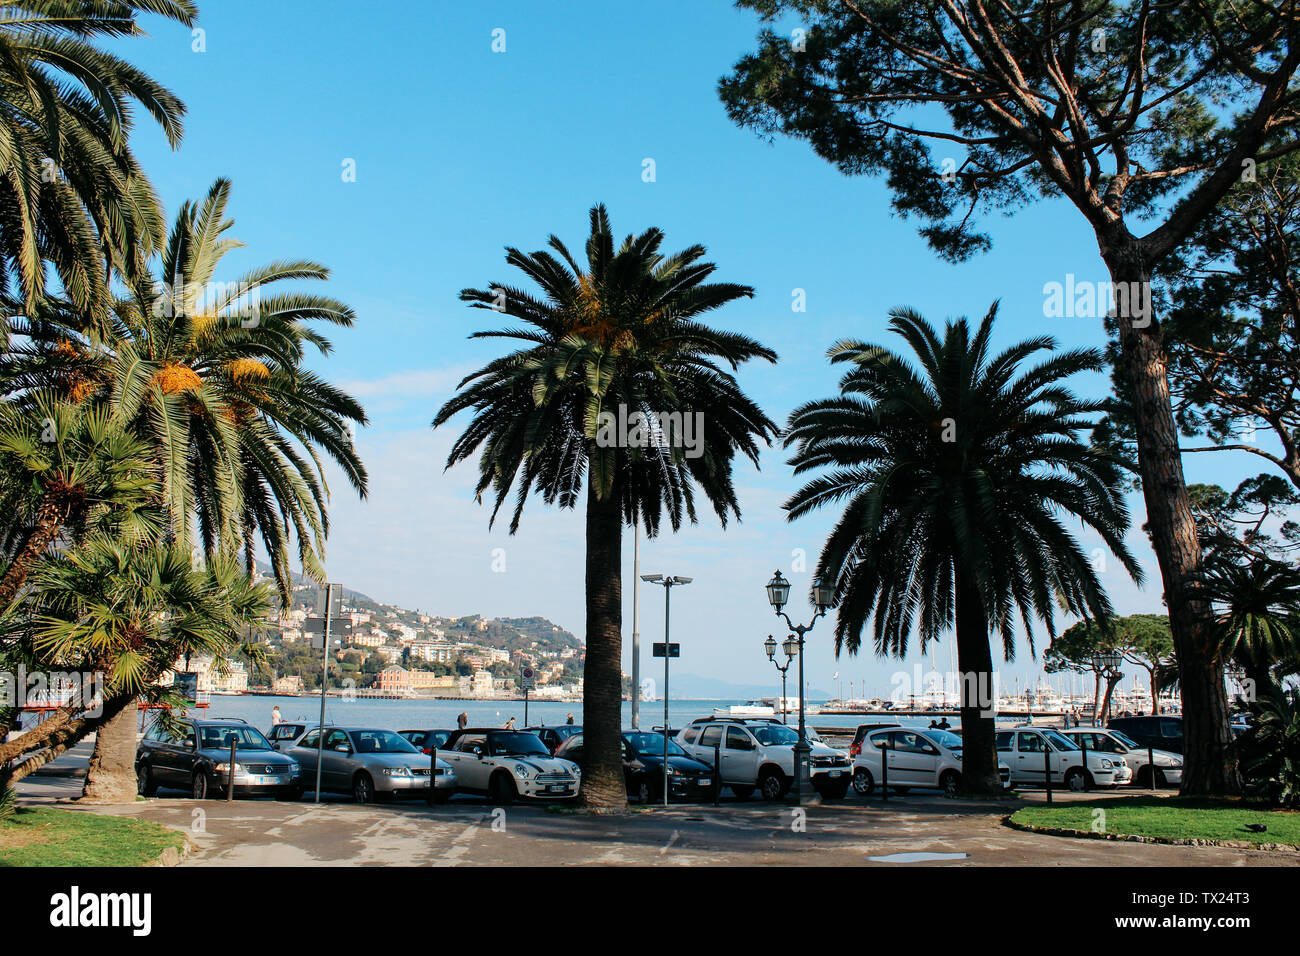 Rapallo, Italy - 03 27 2013: Palm trees on the waterfront, View of the streets of Rapallo - Stock Image